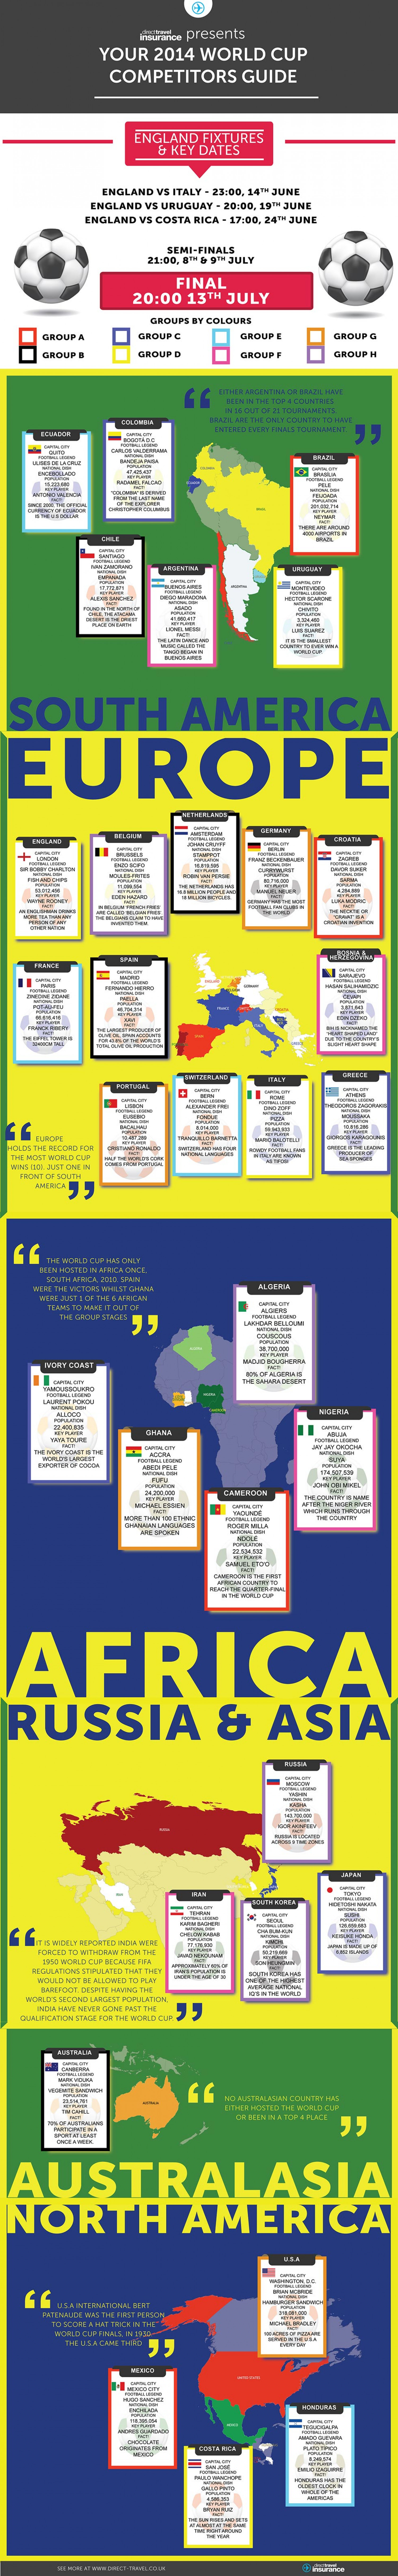 Your 2014 World Cup Competitors Guide Infographic